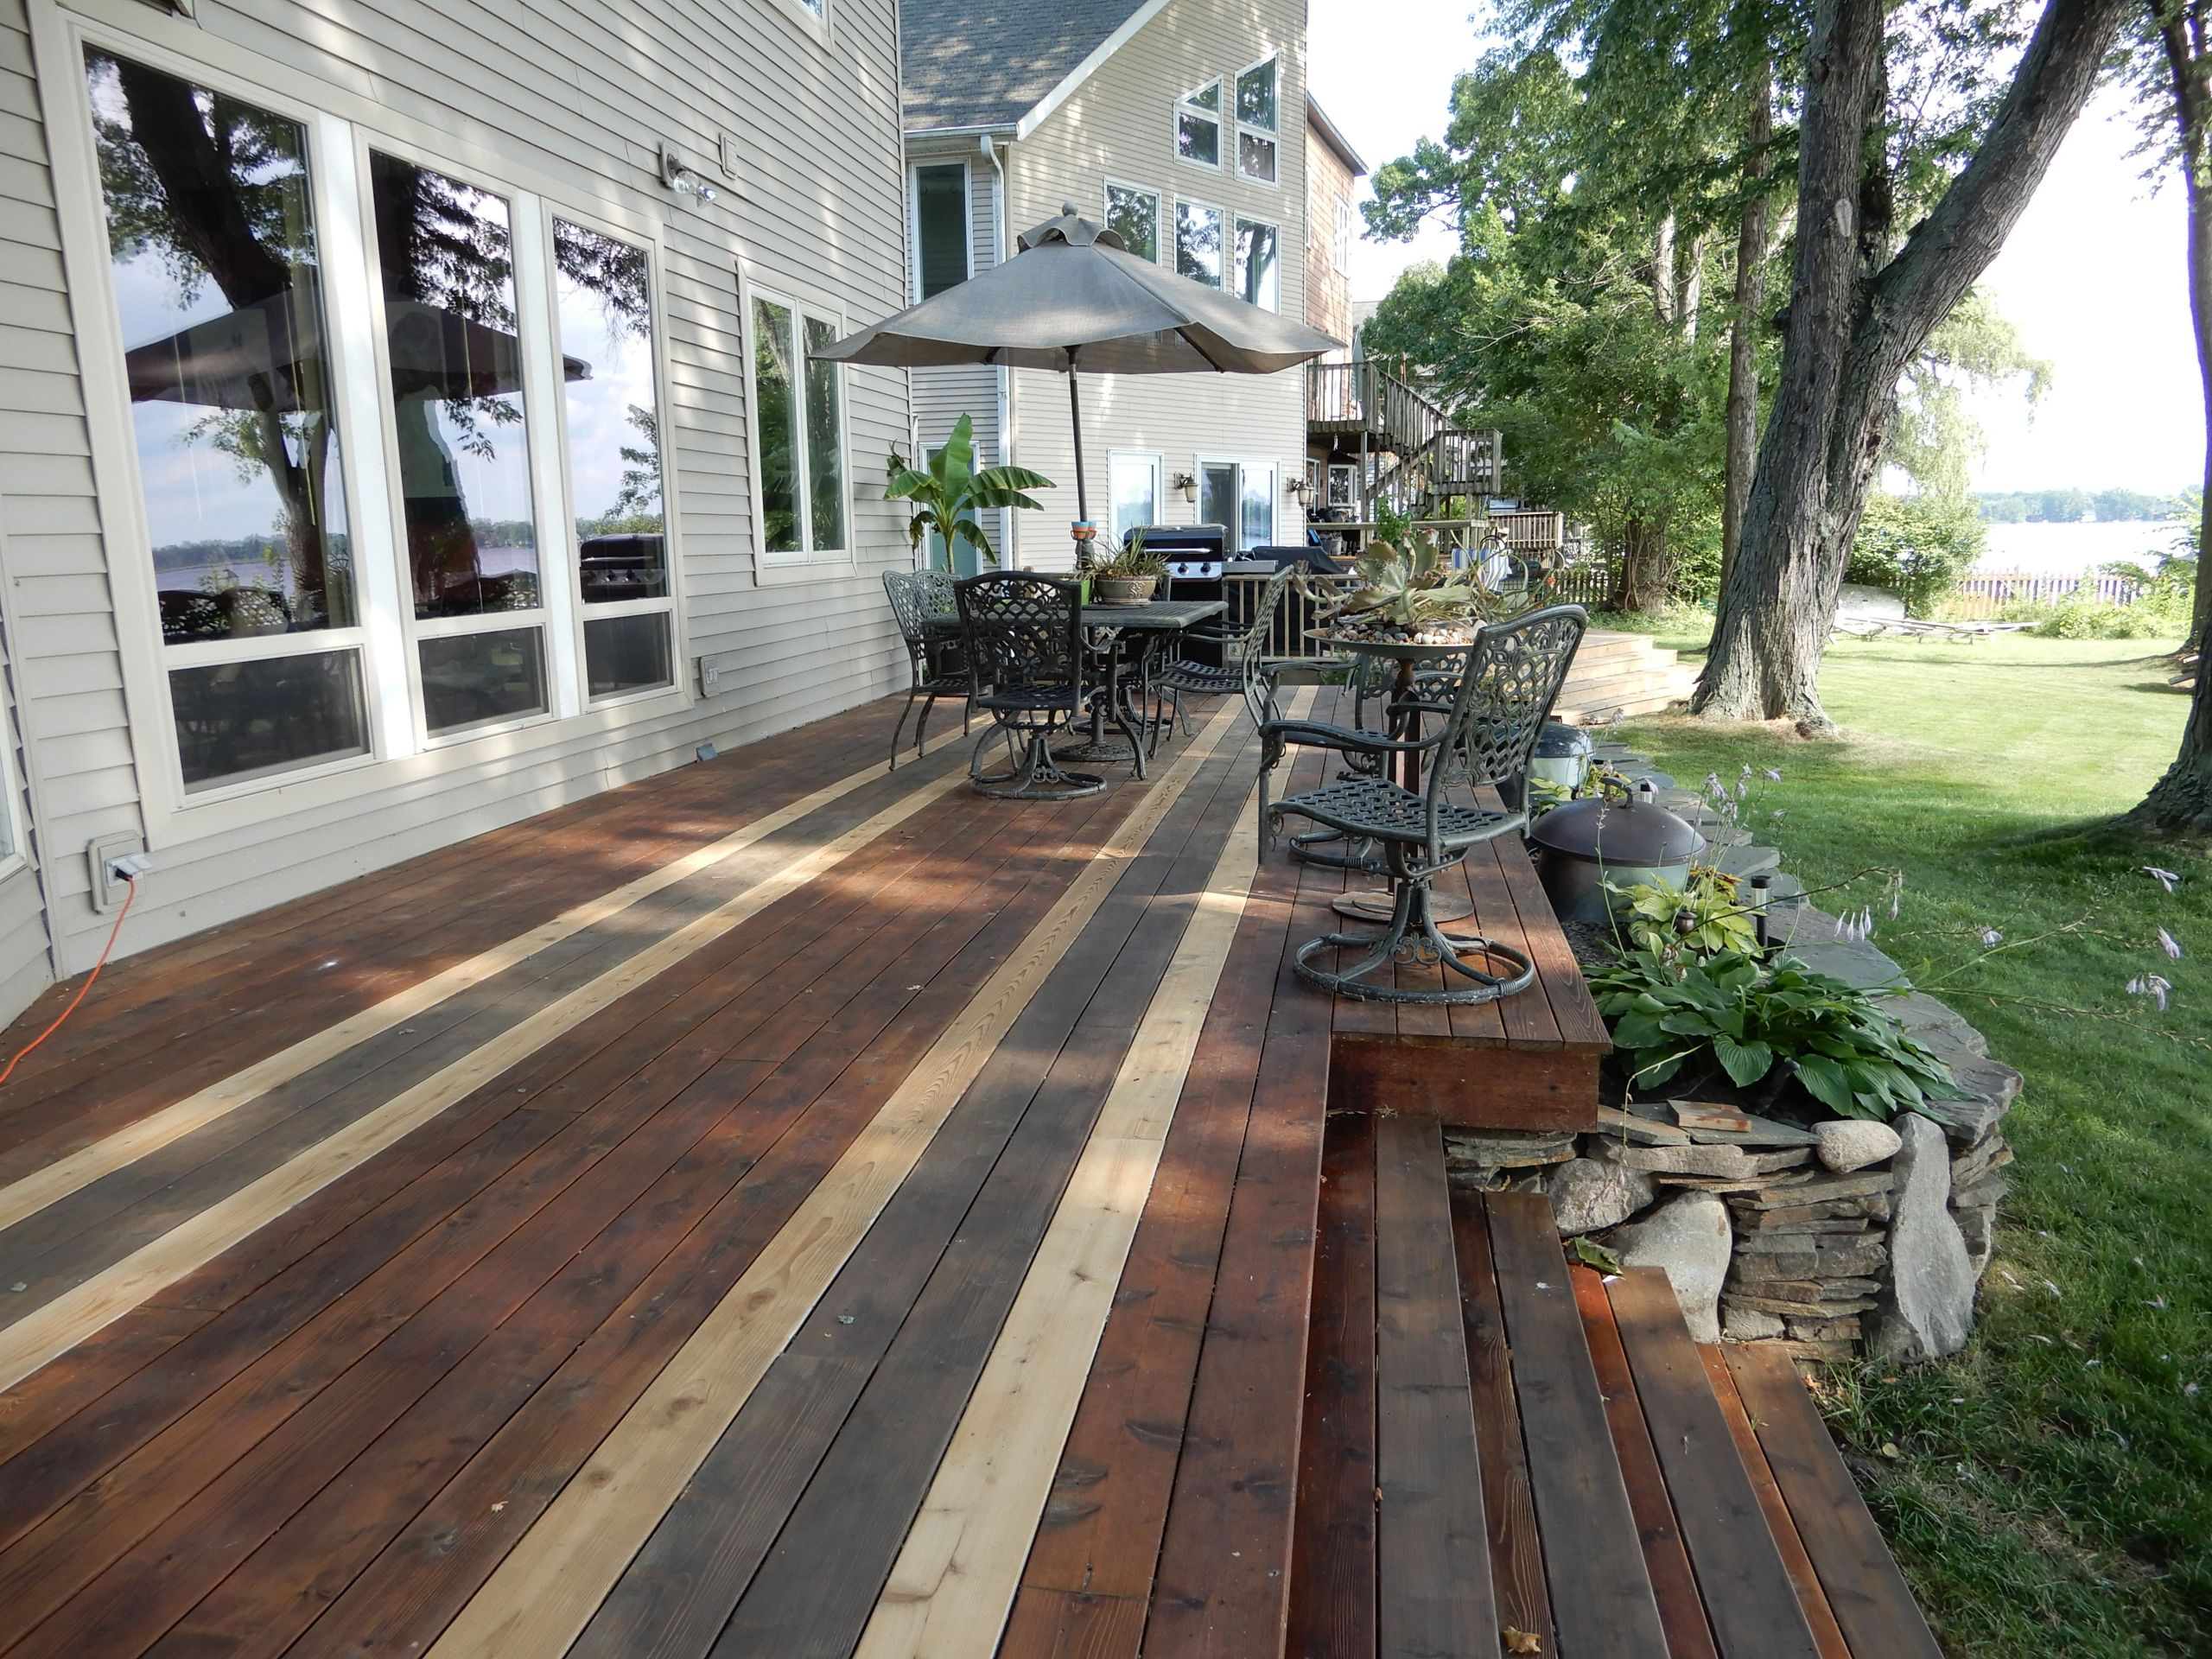 Cool Deck Paint Sherwin Williams  1 Best Stained Deck on Pinterest I stained our deck with